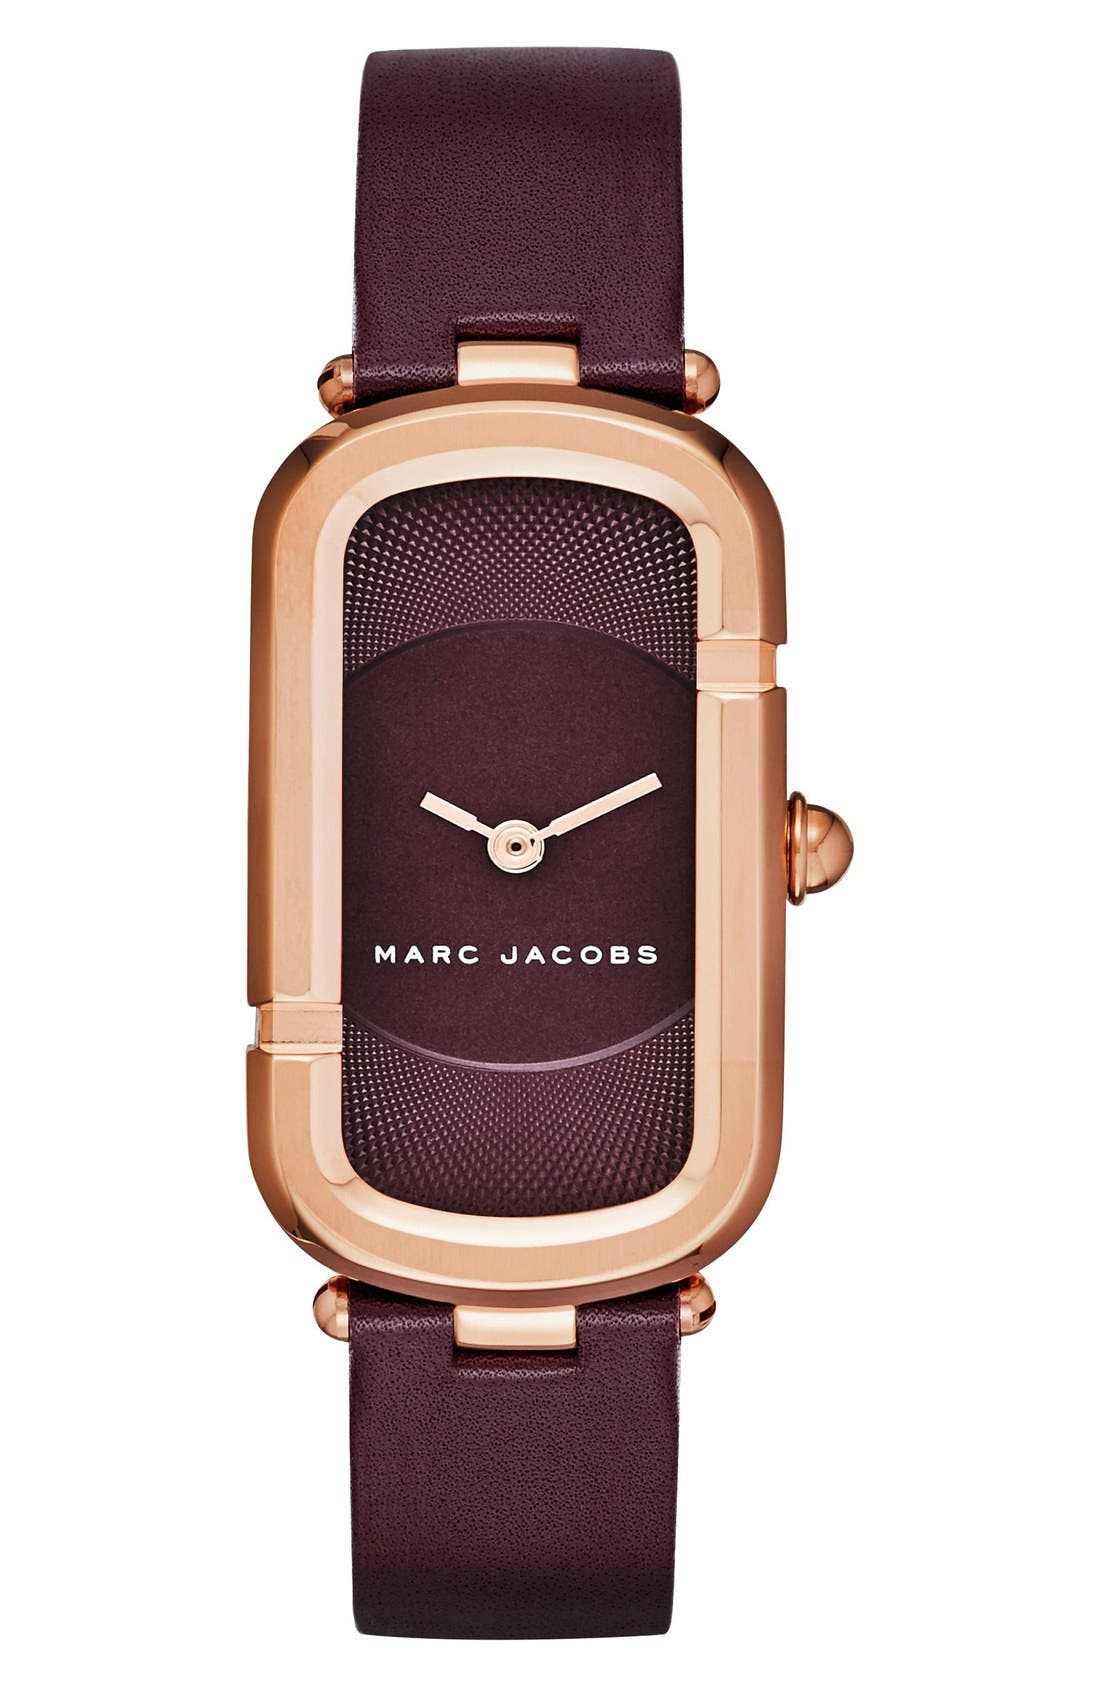 MARC JACOBS 'The Jacobs' Leather Strap Watch, 24mm x 39mm